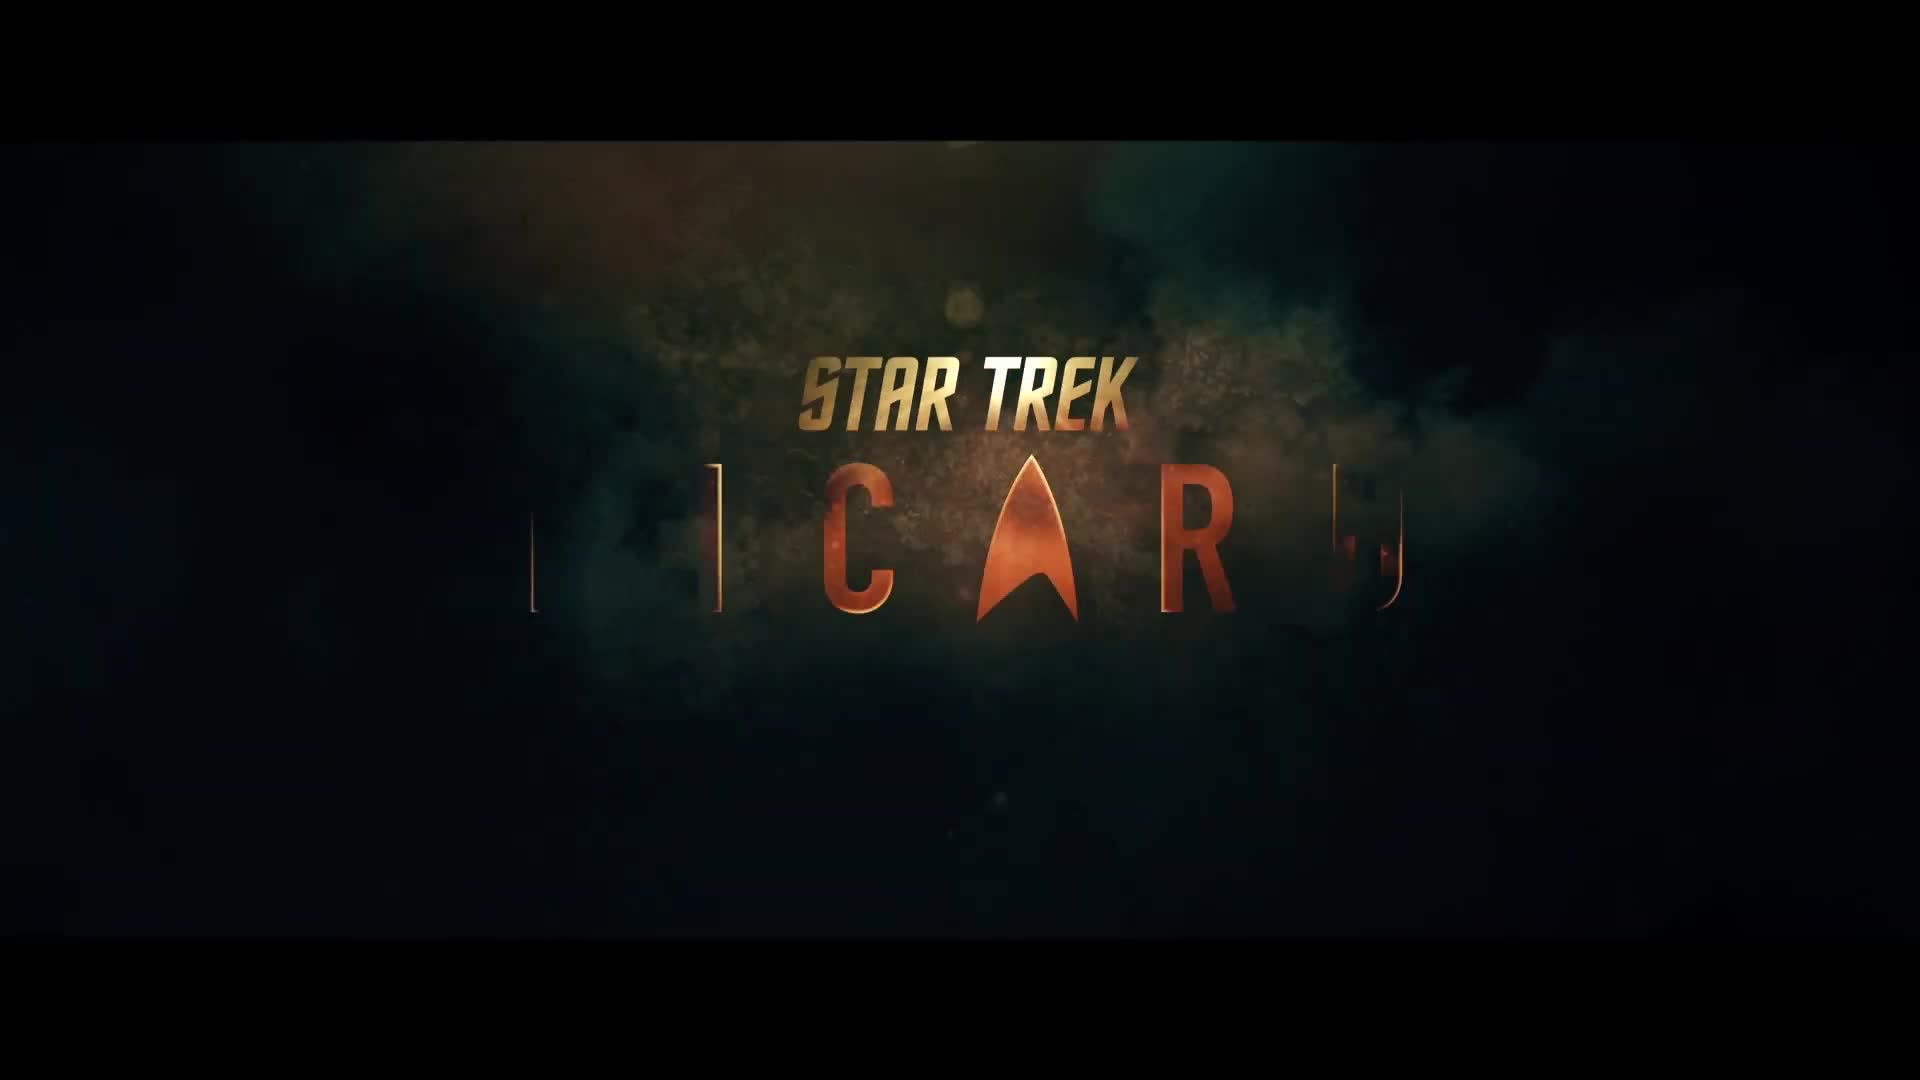 Trailer, Amazon, Star Trek, Amazon Prime Video, Picard, Comiccon